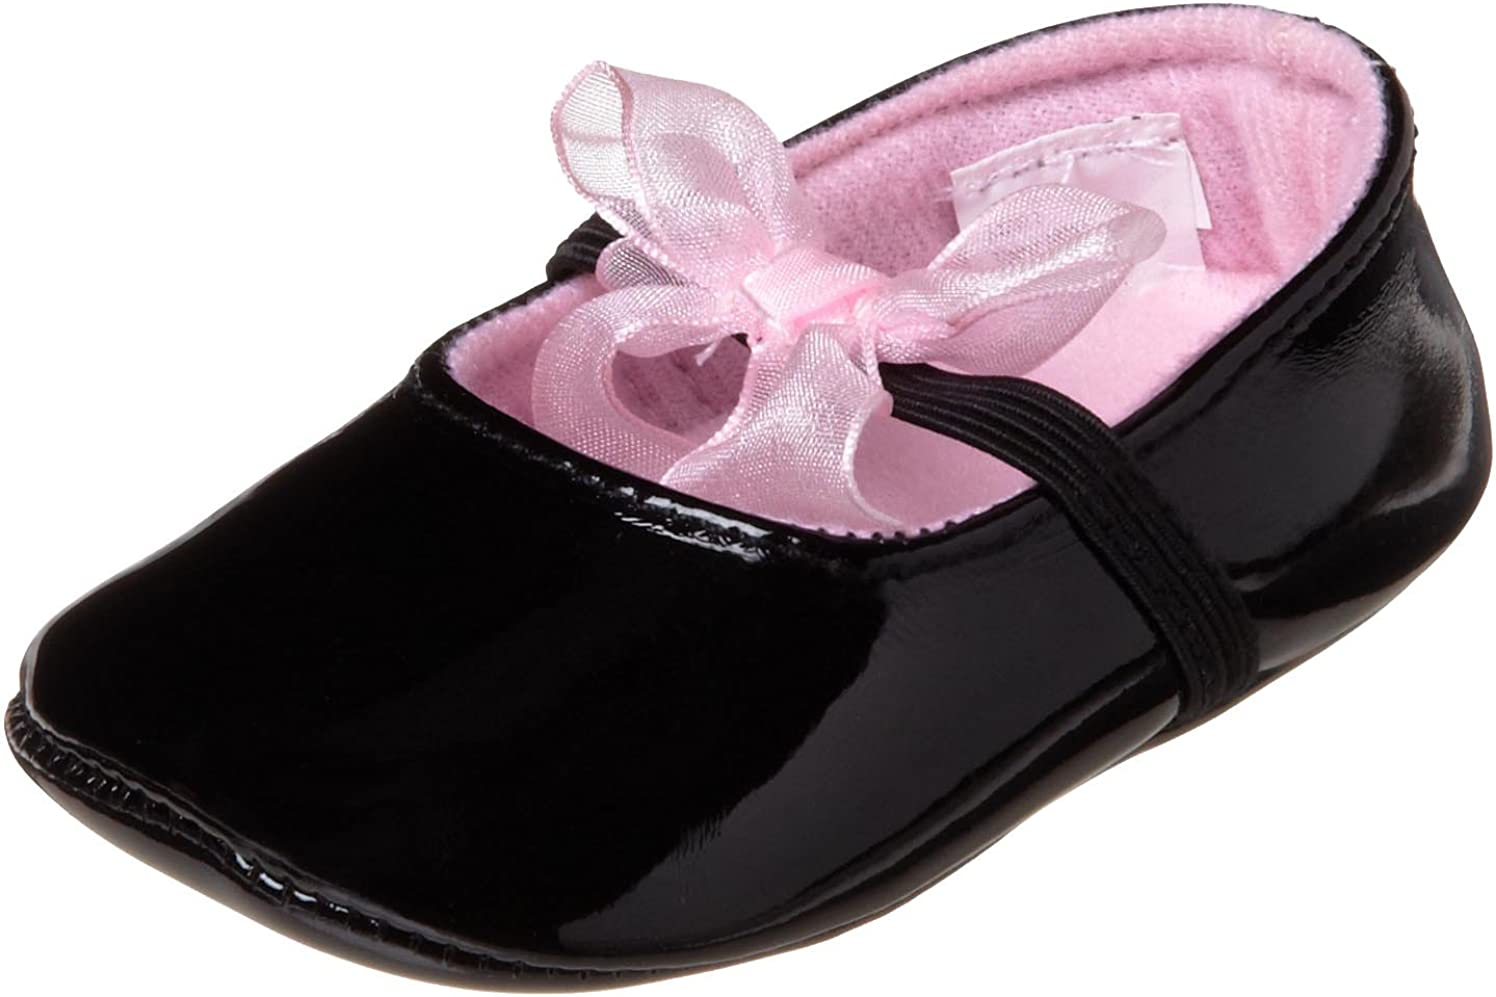 Little Me Baby-Girls Newborn Patent With Sheer Lace Bow Socks